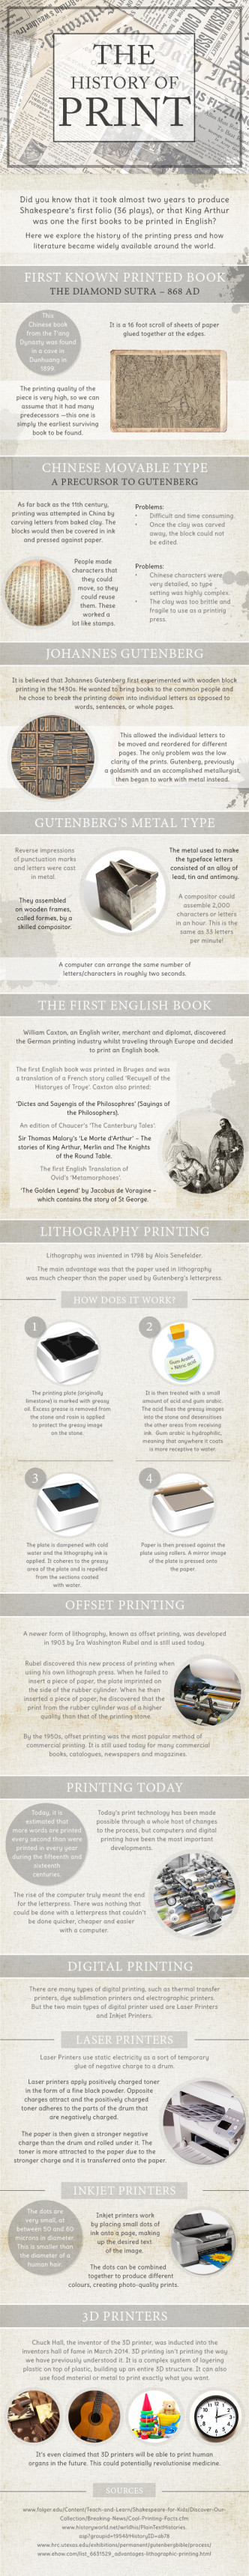 The history of the printed word #infographic